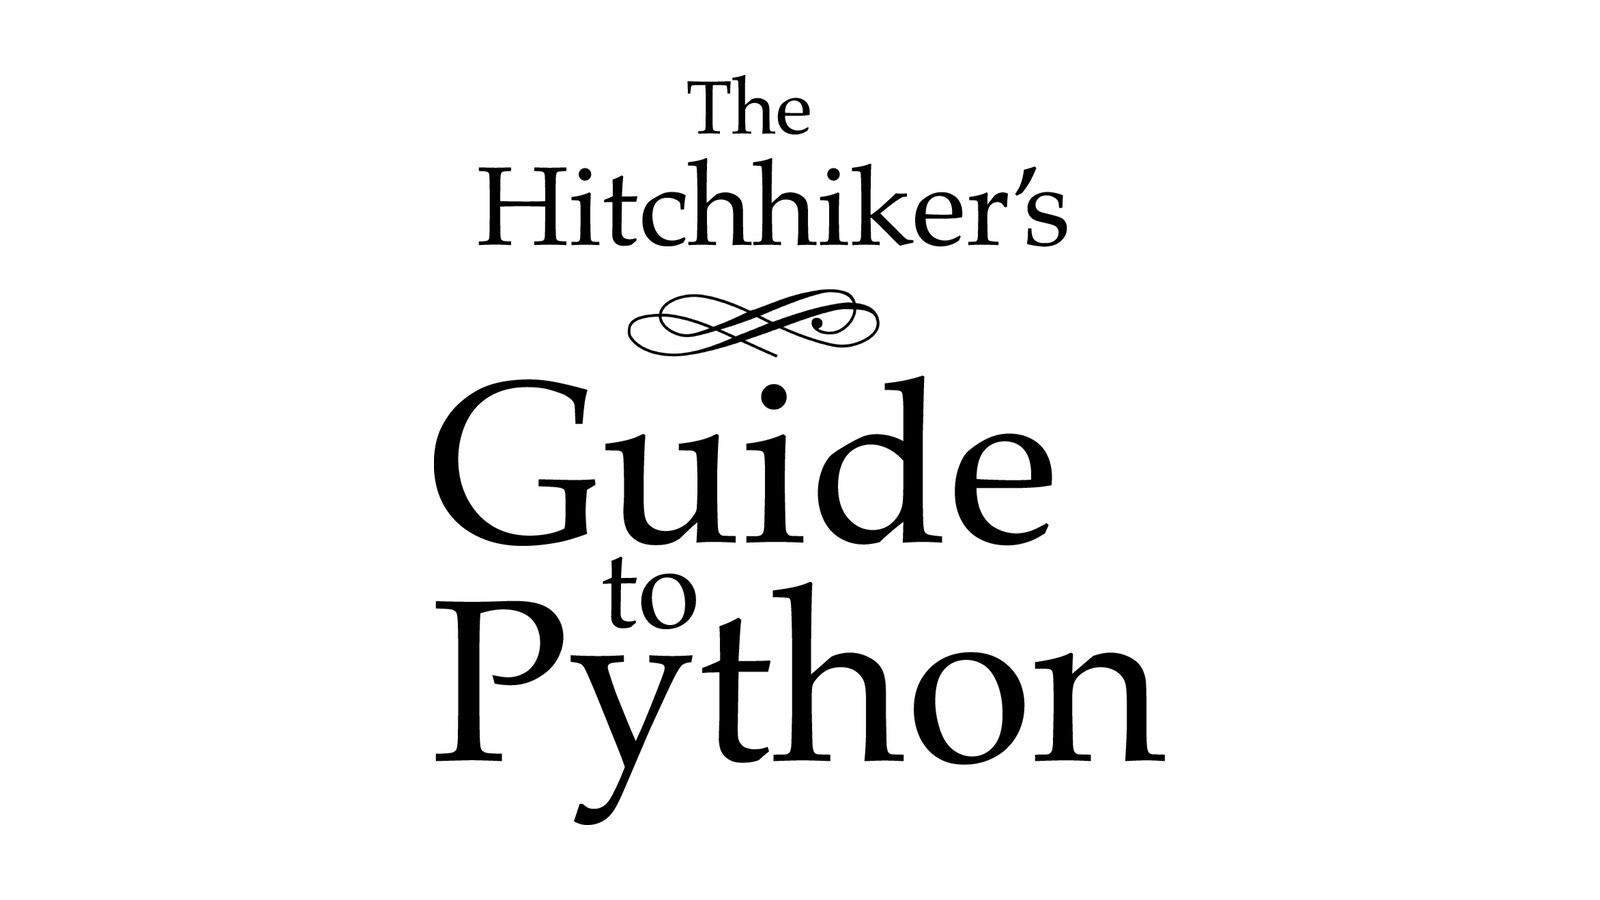 The Hitchhiker's Guide to Python! — The Hitchhiker's Guide to Python